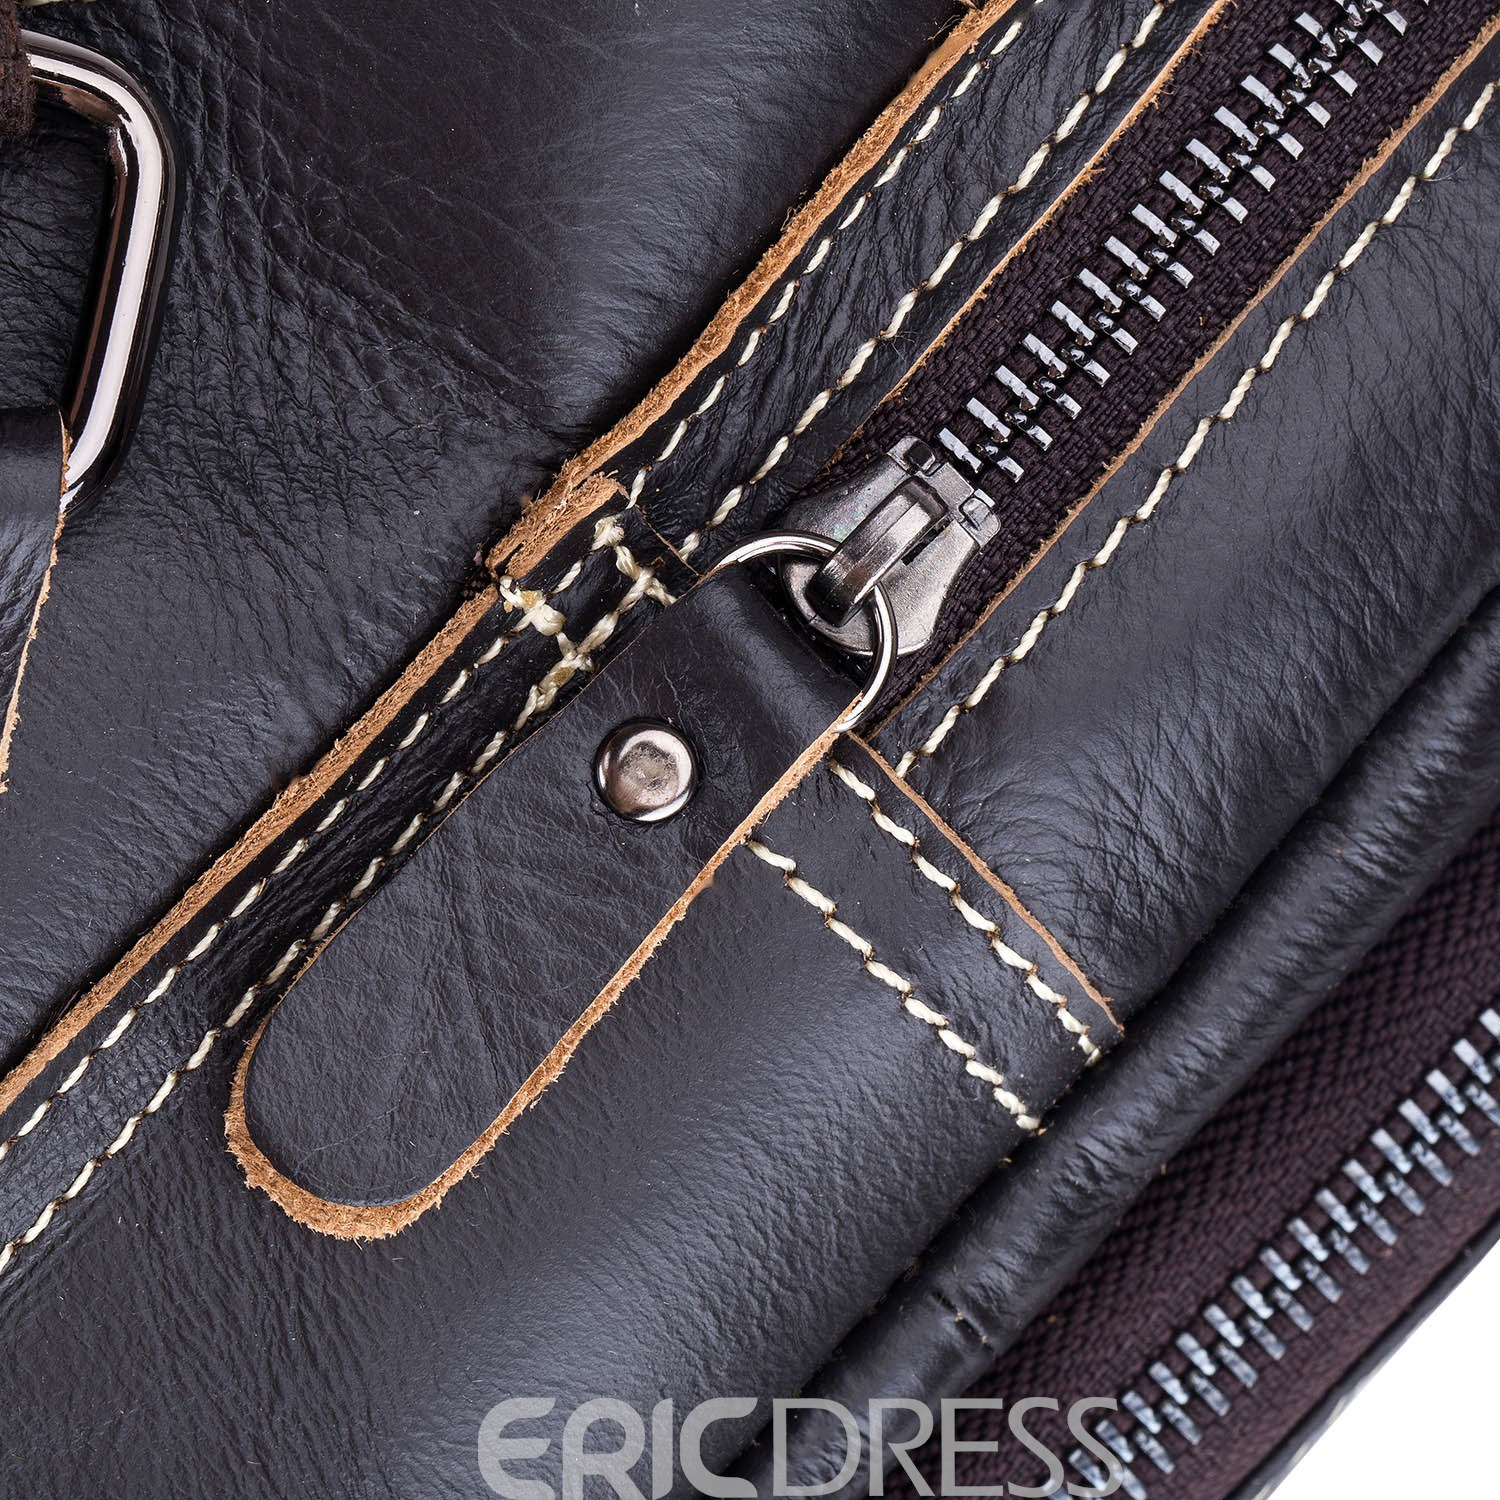 Ericdress Men's European Leather Chest Packs